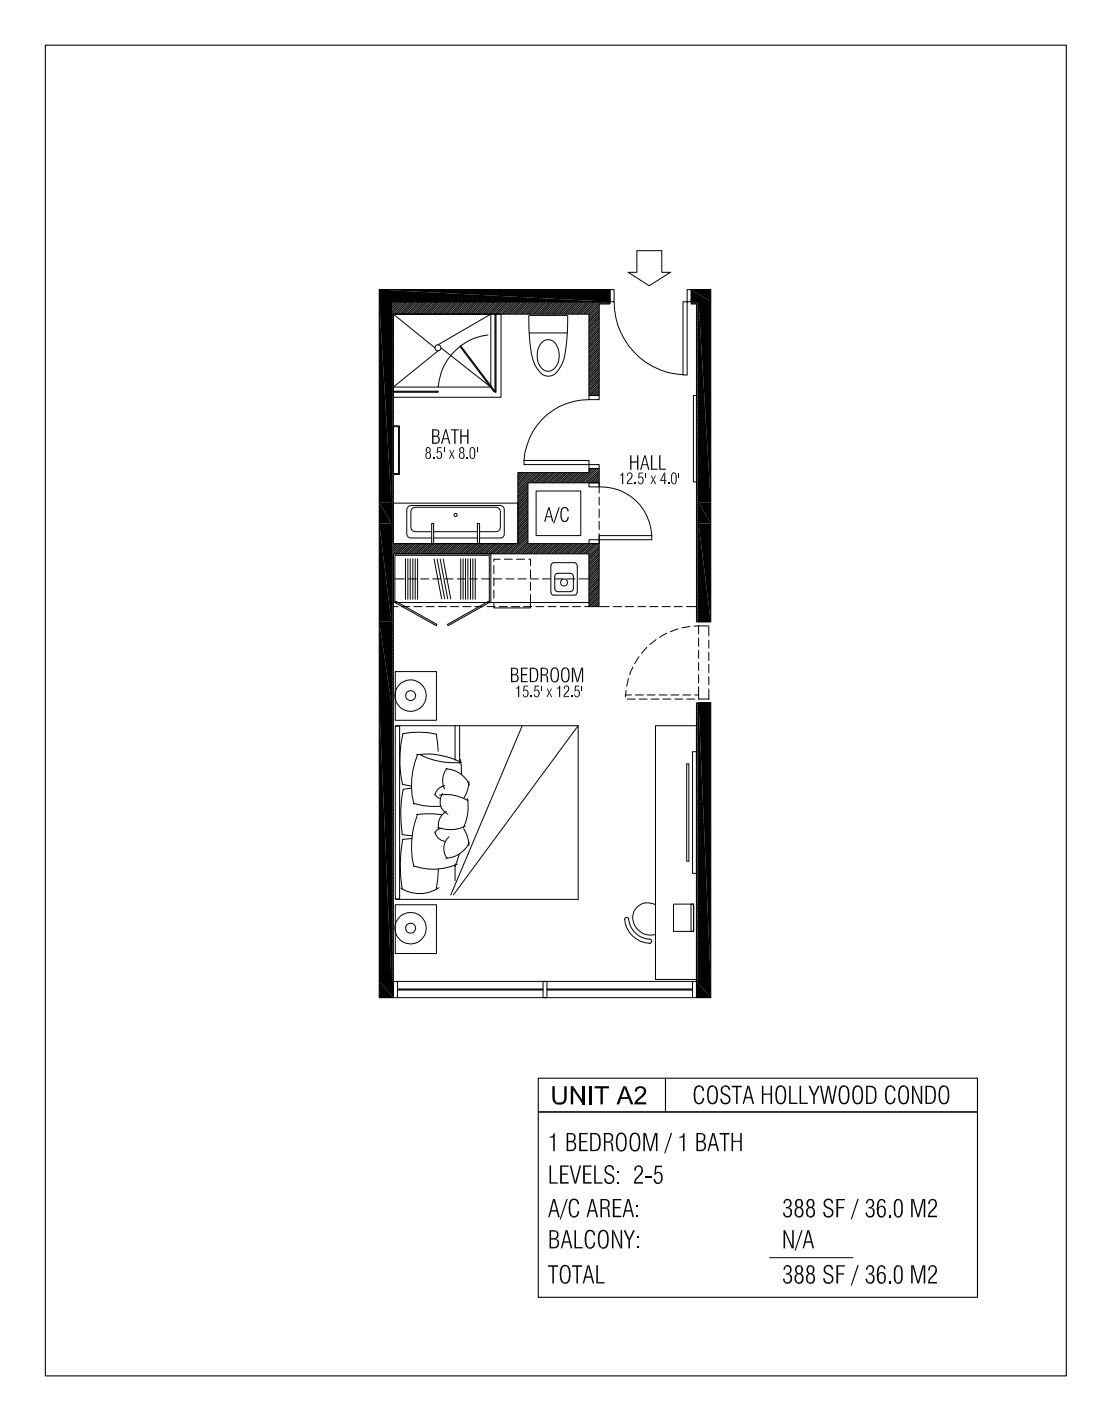 Melia Costa Hollywood - Floorplan 1